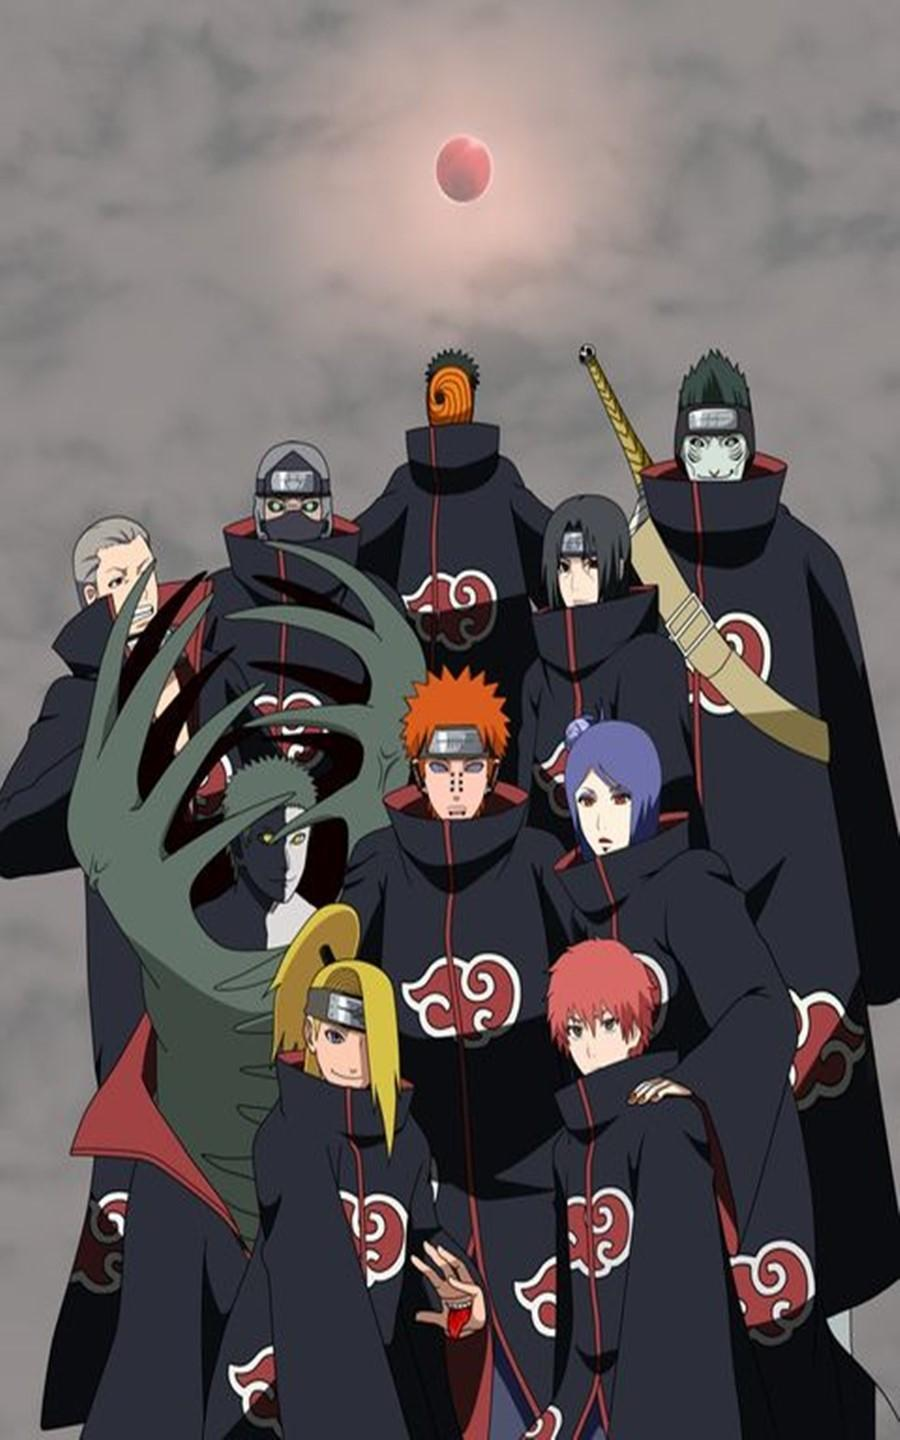 Akatsuki Wallpaper For Android Apk Download